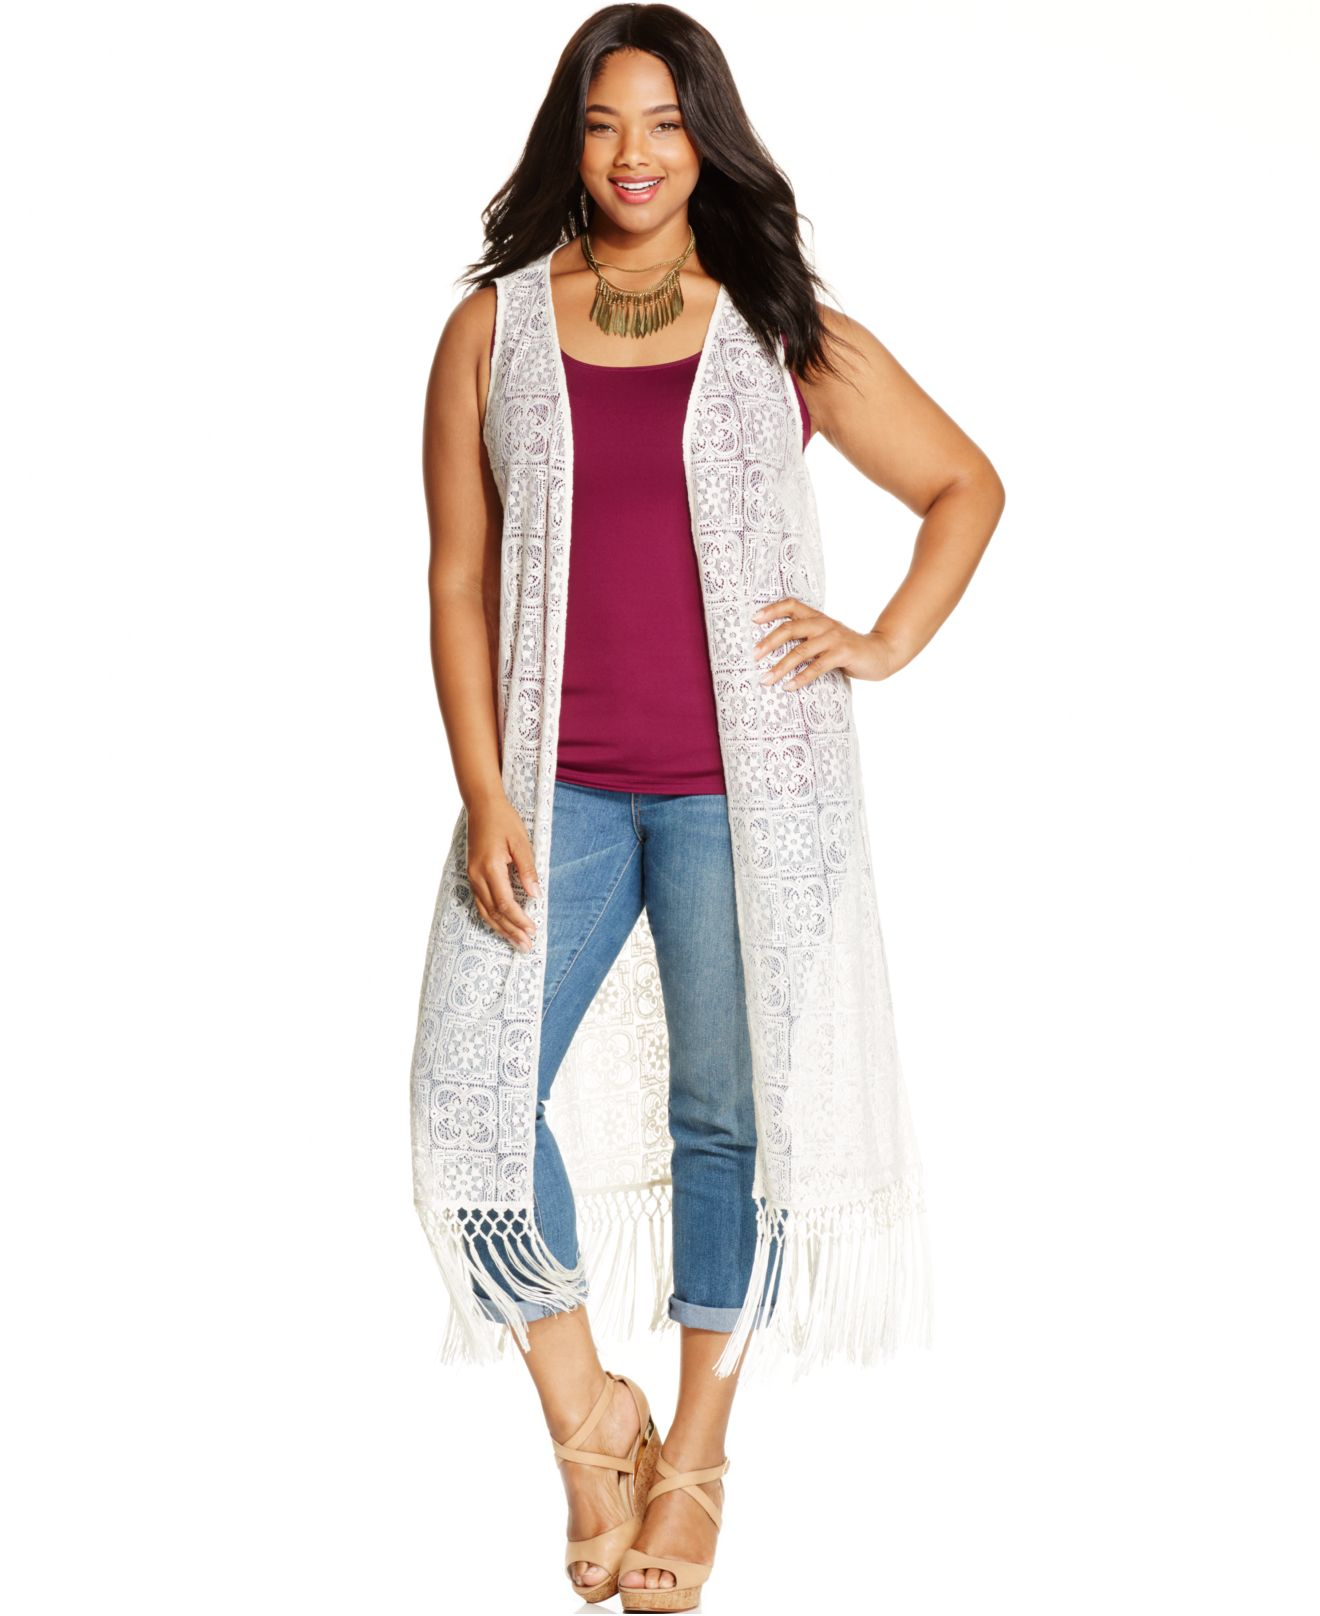 Jessica simpson Plus Size Sleeveless Fringed Duster Cardigan in ...